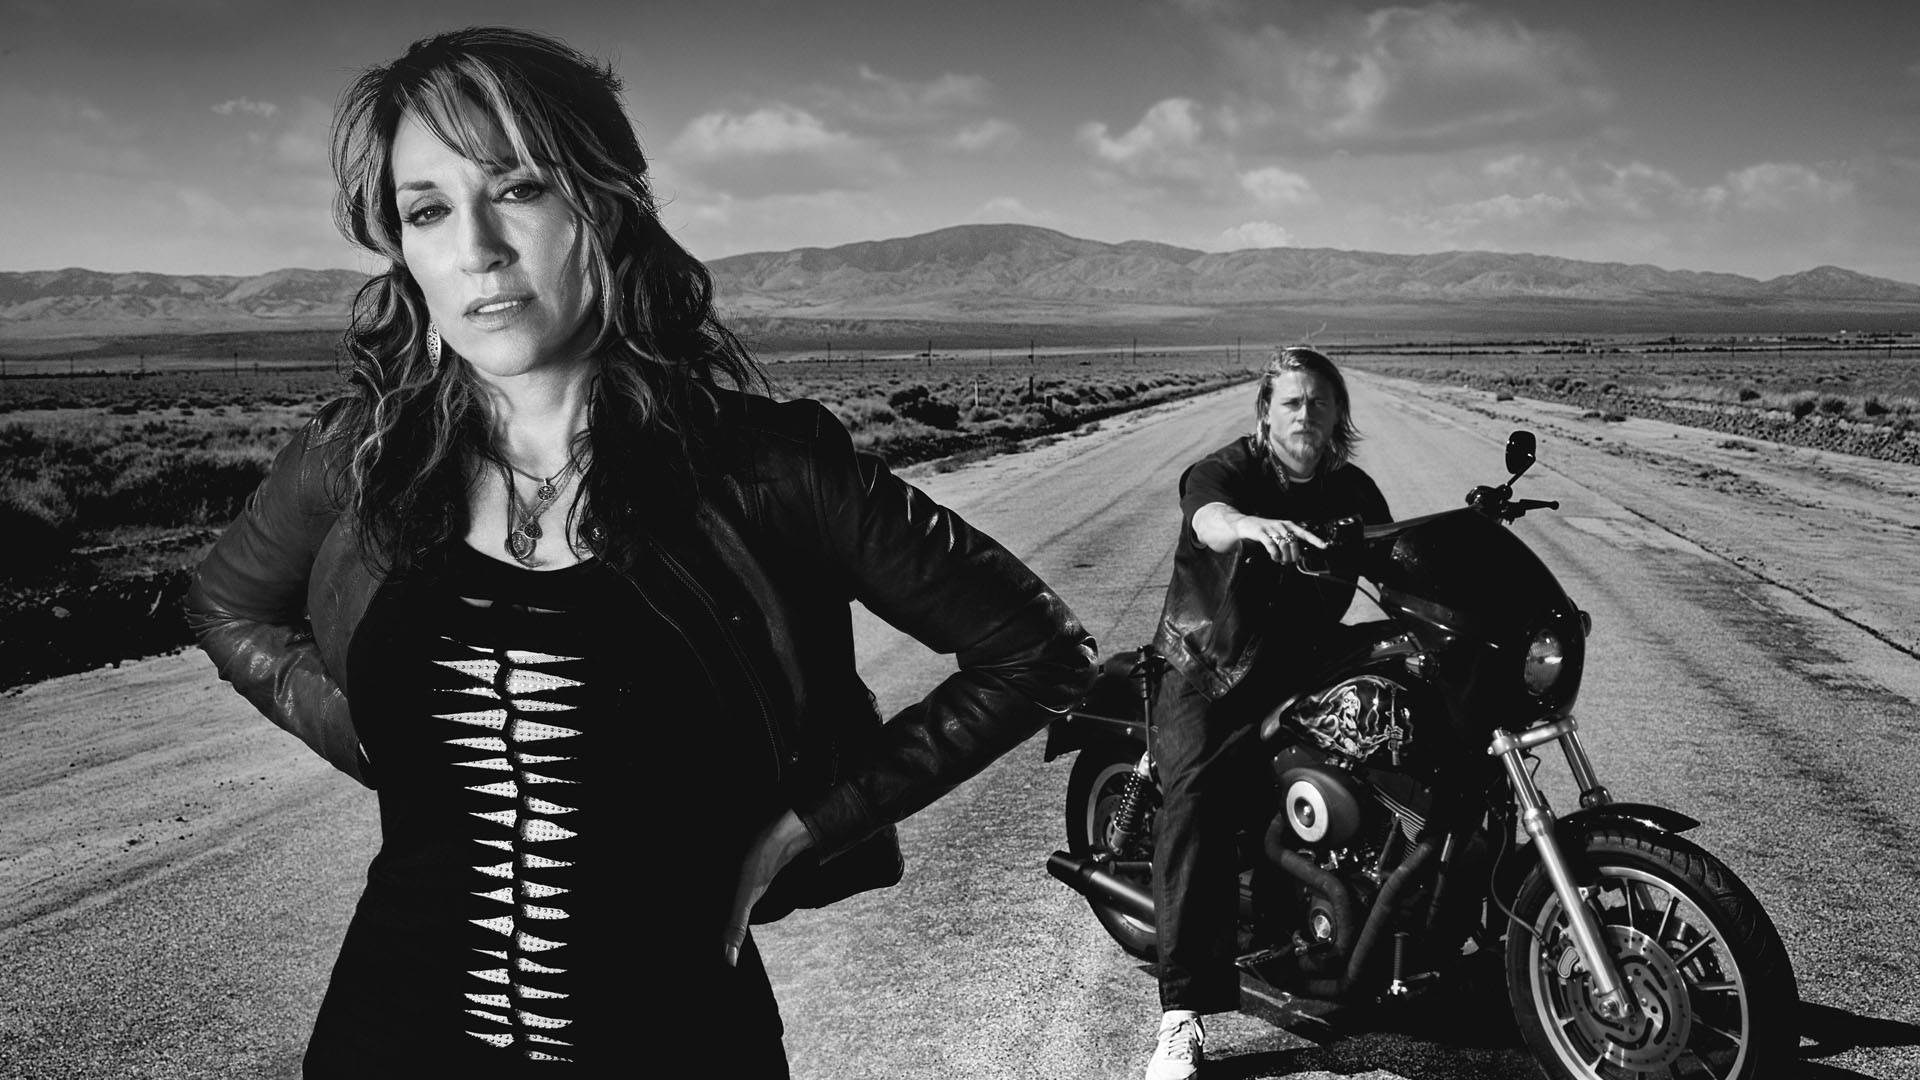 Sons of Anarchy wallpaper 19